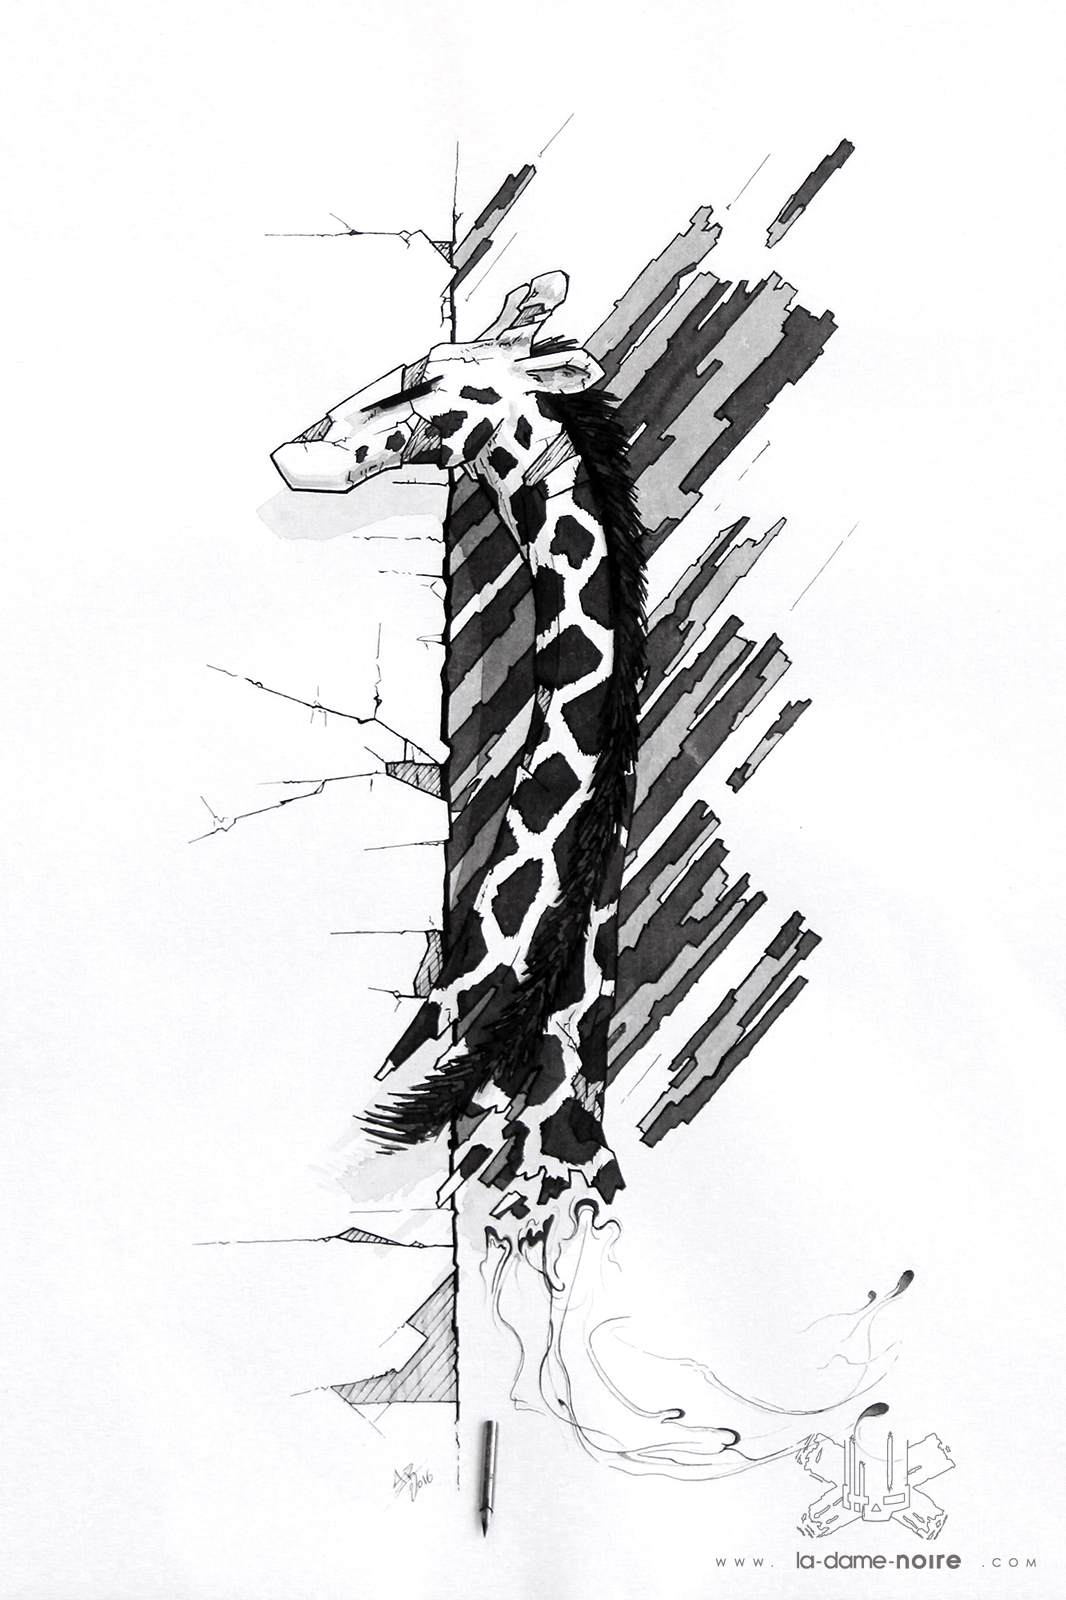 Drawing of a Giraffe made with a quill and black china ink